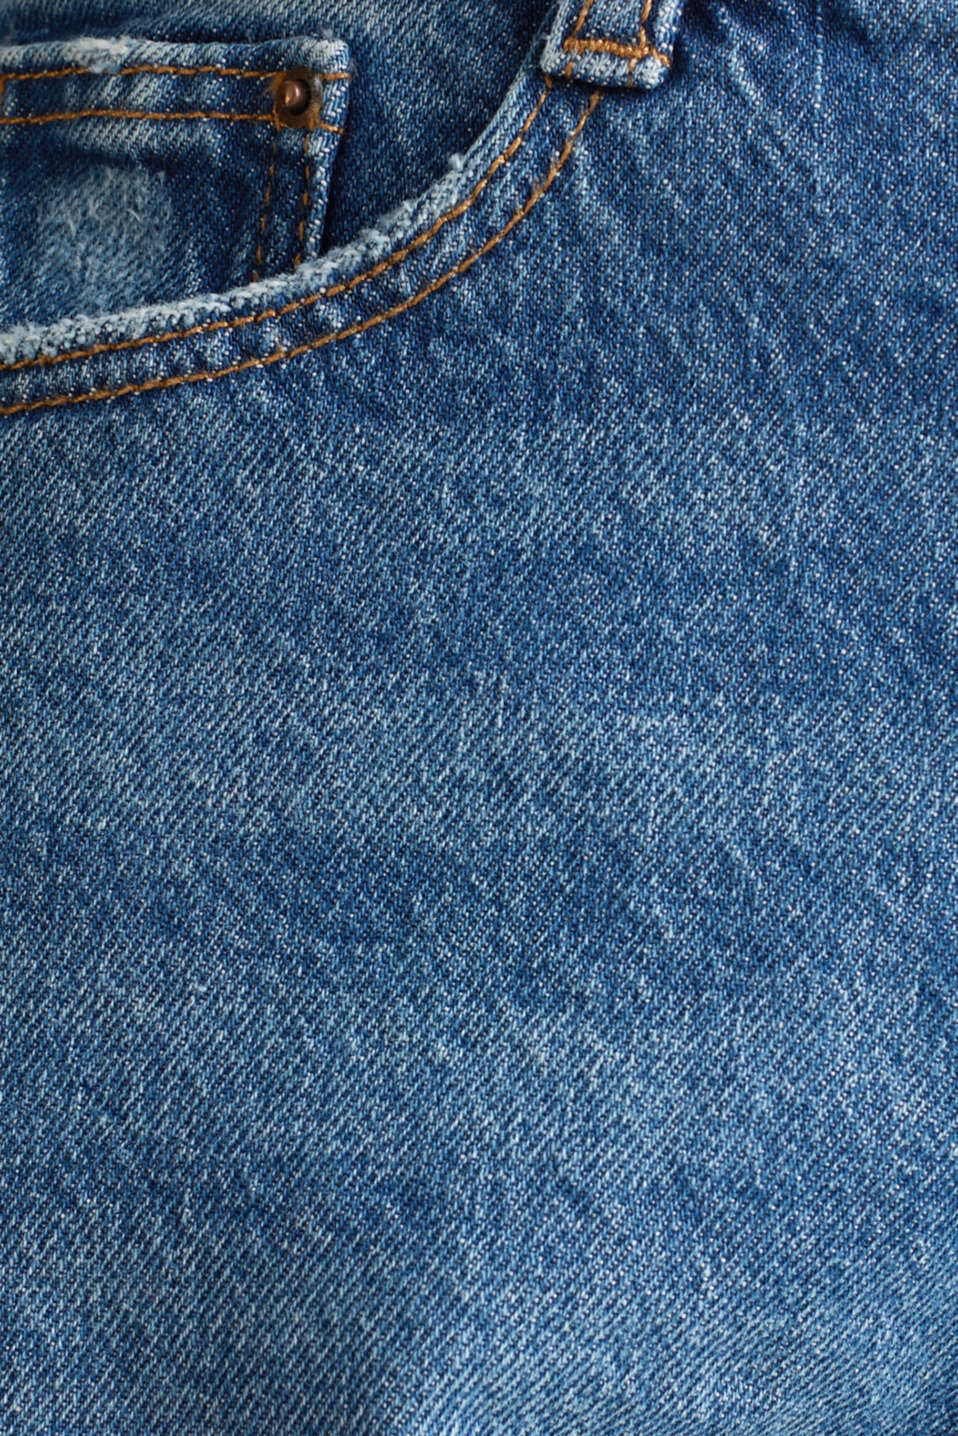 Vintage-finish jeans with high-low hems, BLUE MEDIUM WASH, detail image number 4